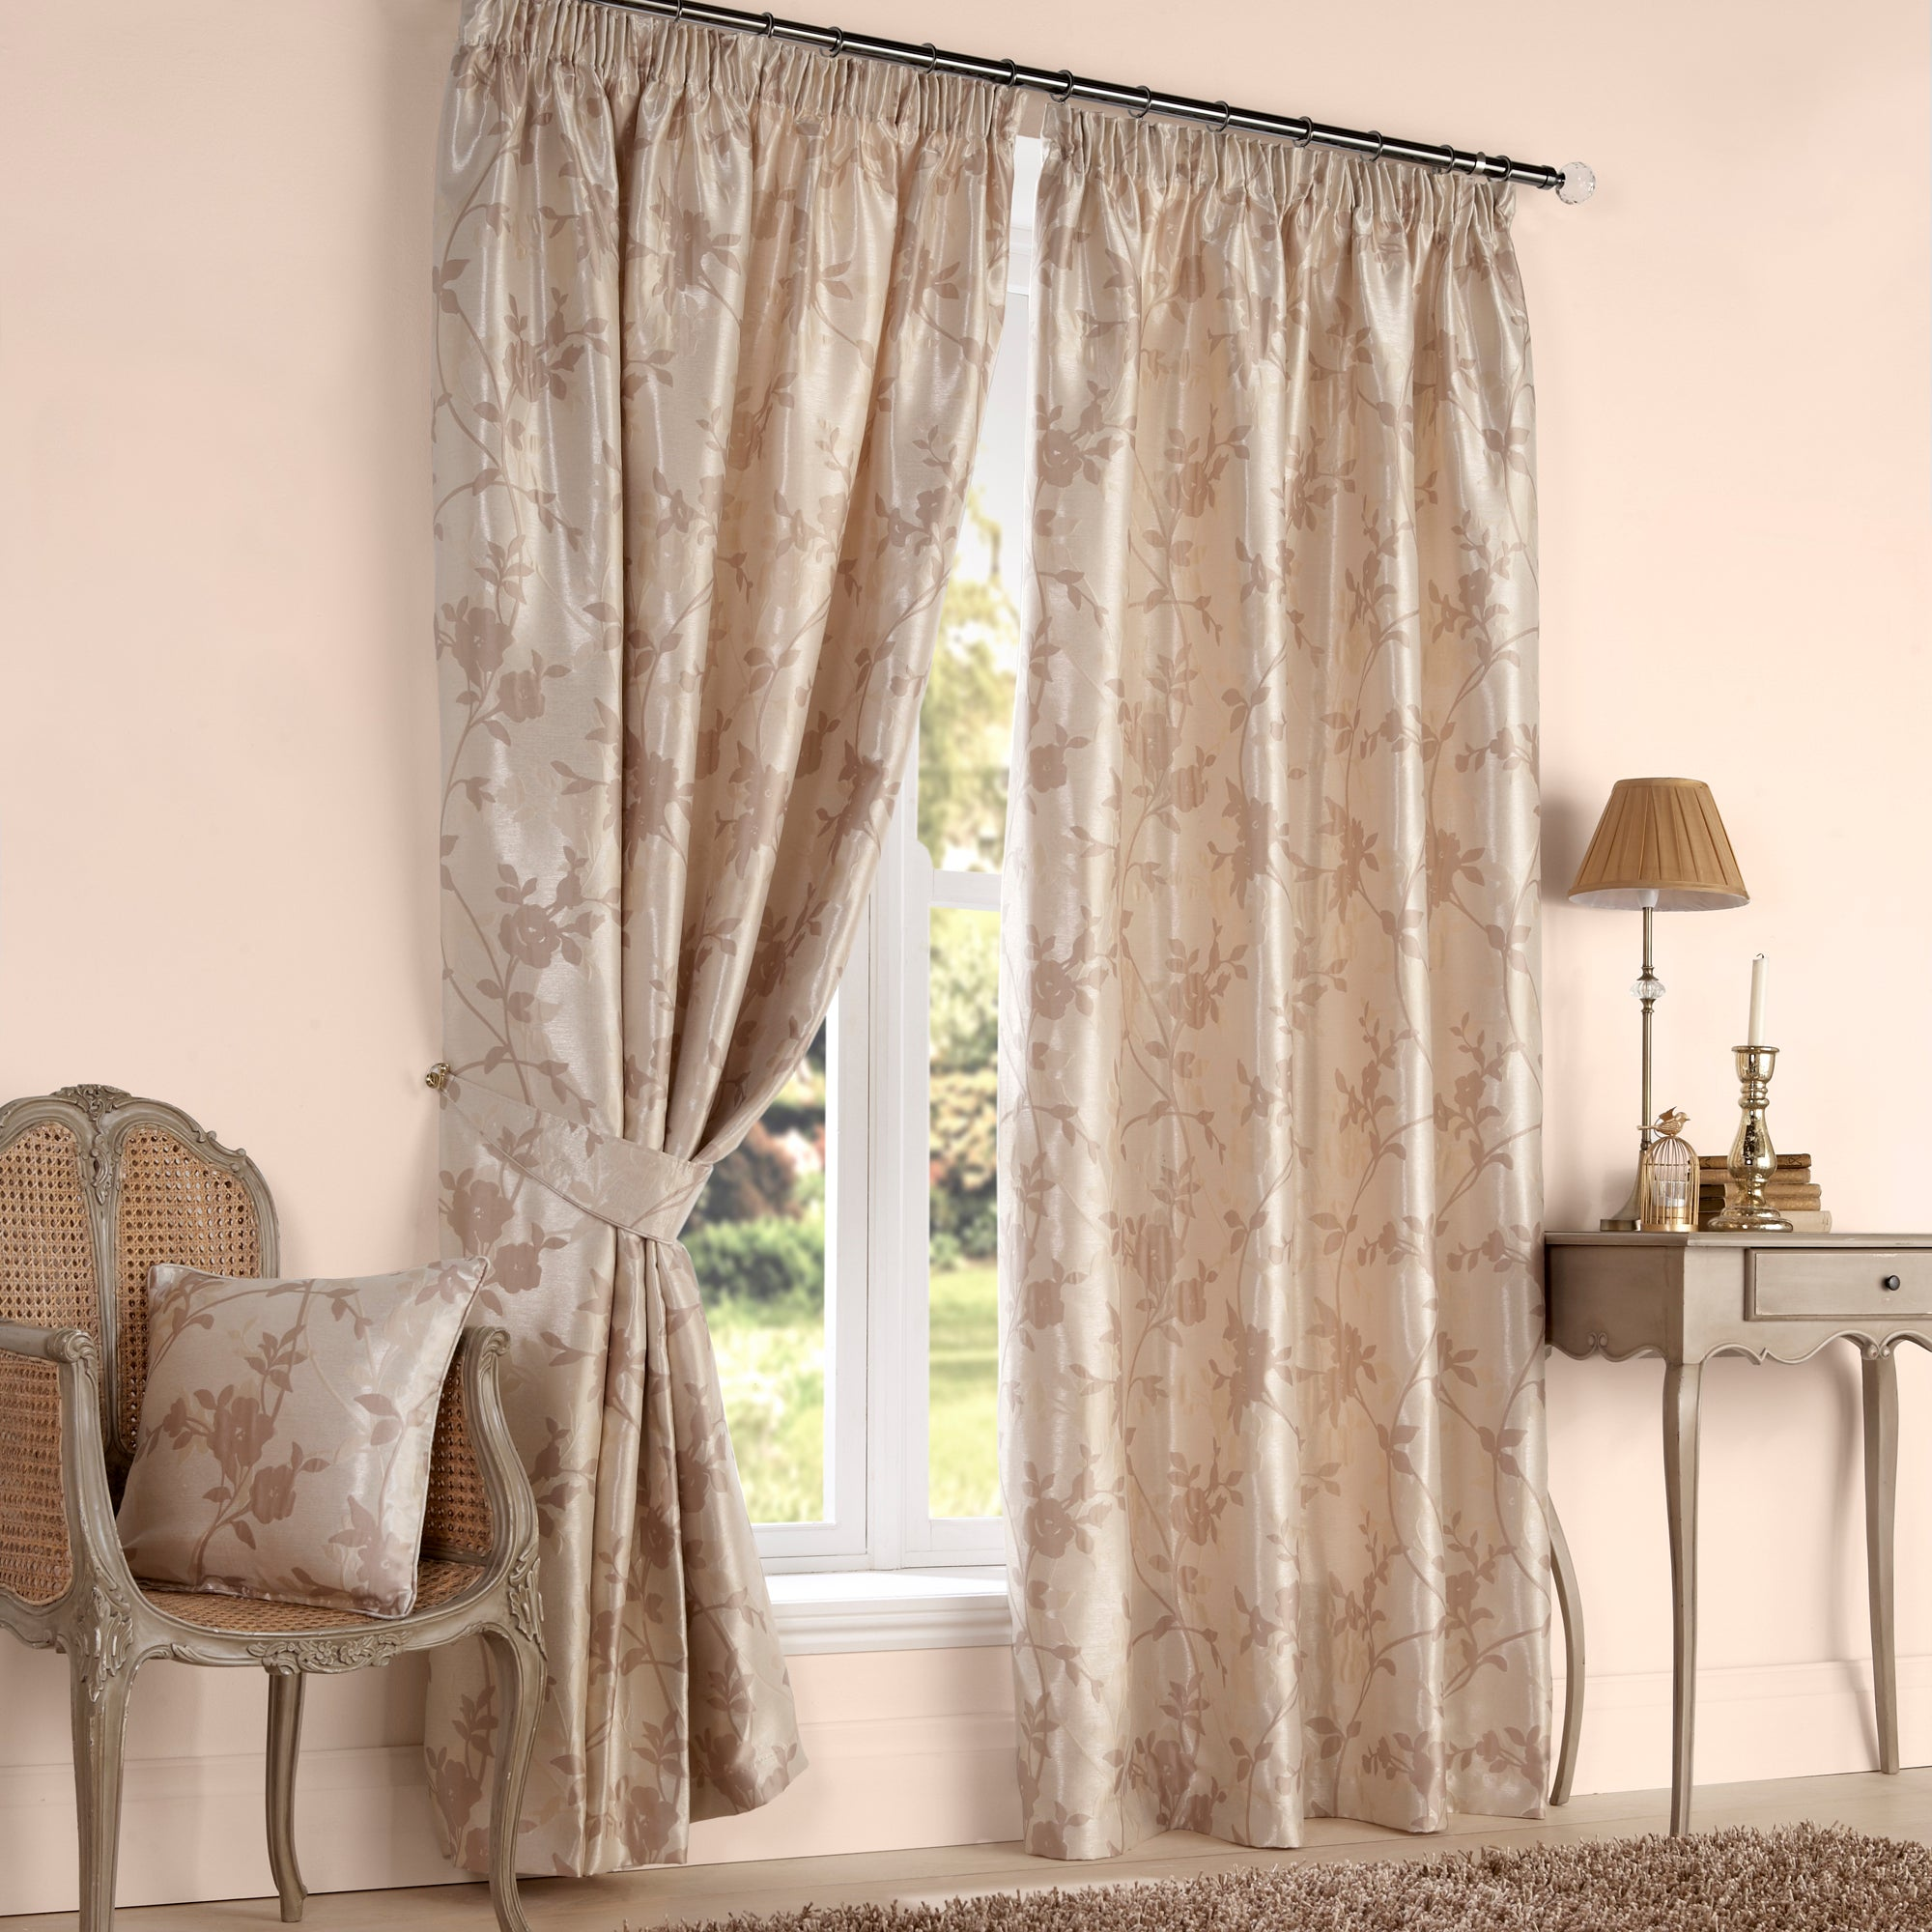 Natural Arianna Lined Pencil Pleat Curtains